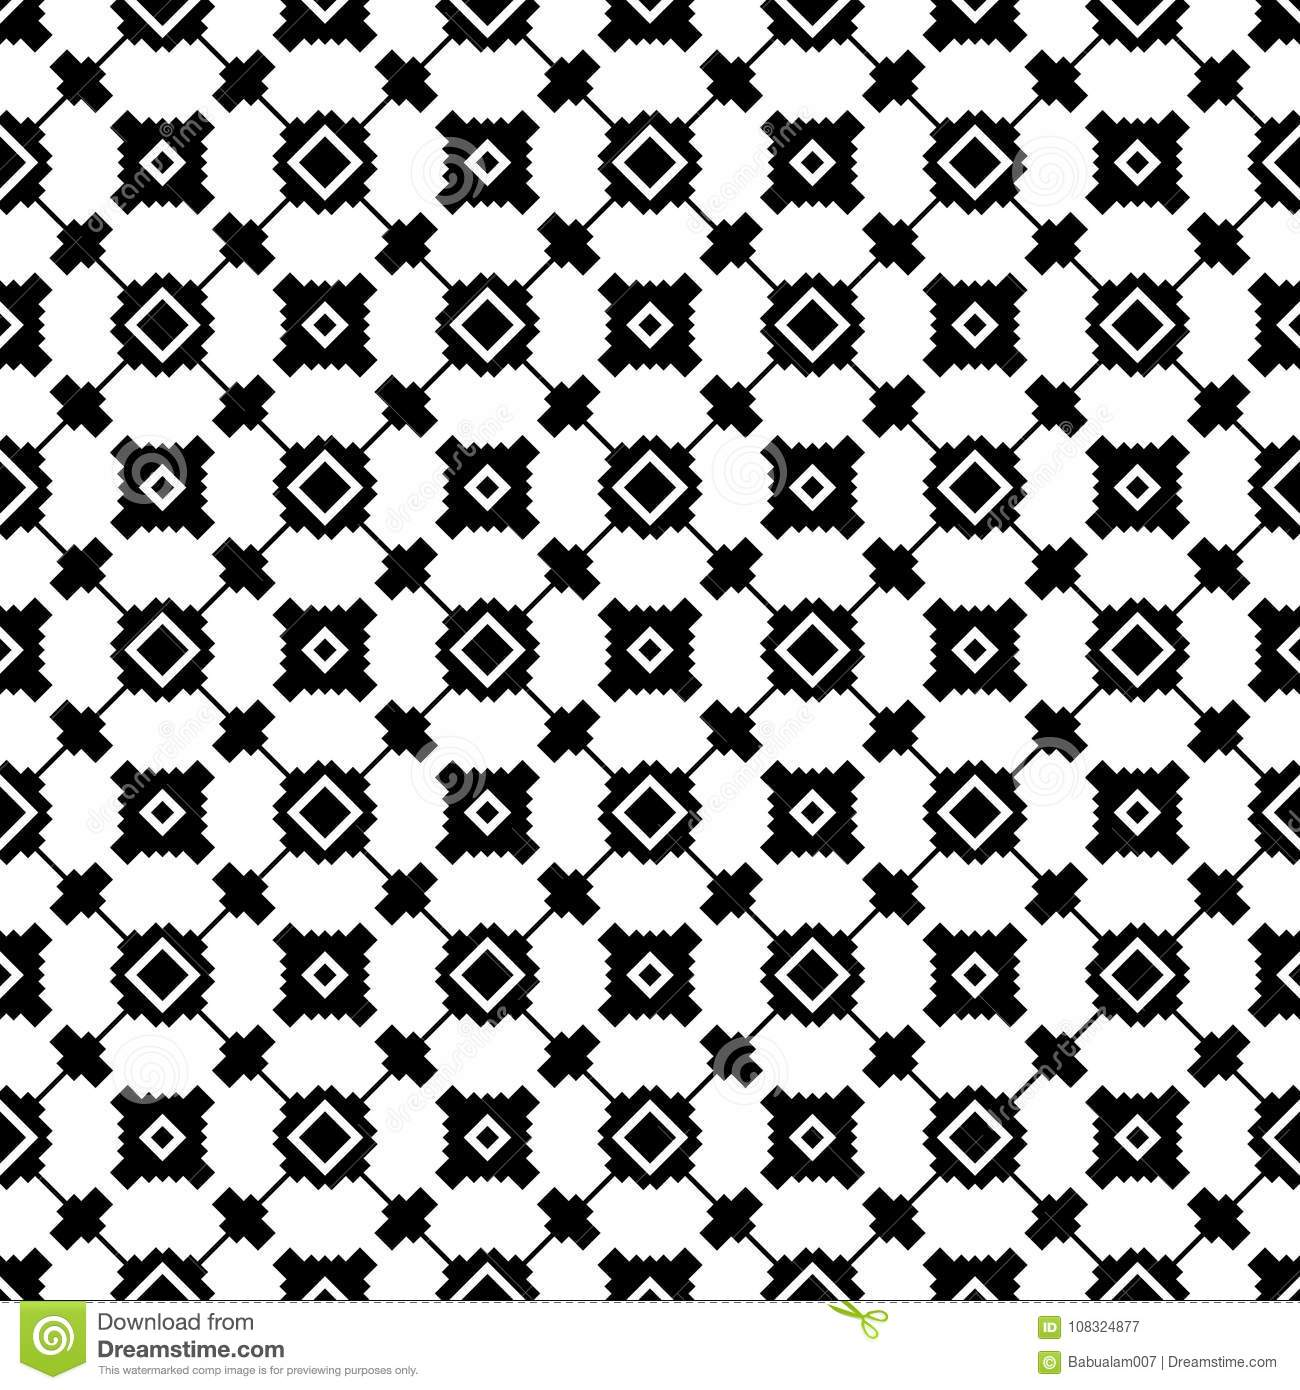 Great Wallpaper Home Screen Black And White - background-wallpaper-screen-sever-book-cover-screen-printing-laser-cutting-designs-vector-black-white-pattern-design-dot-geometric-108324877  Collection_182652.jpg